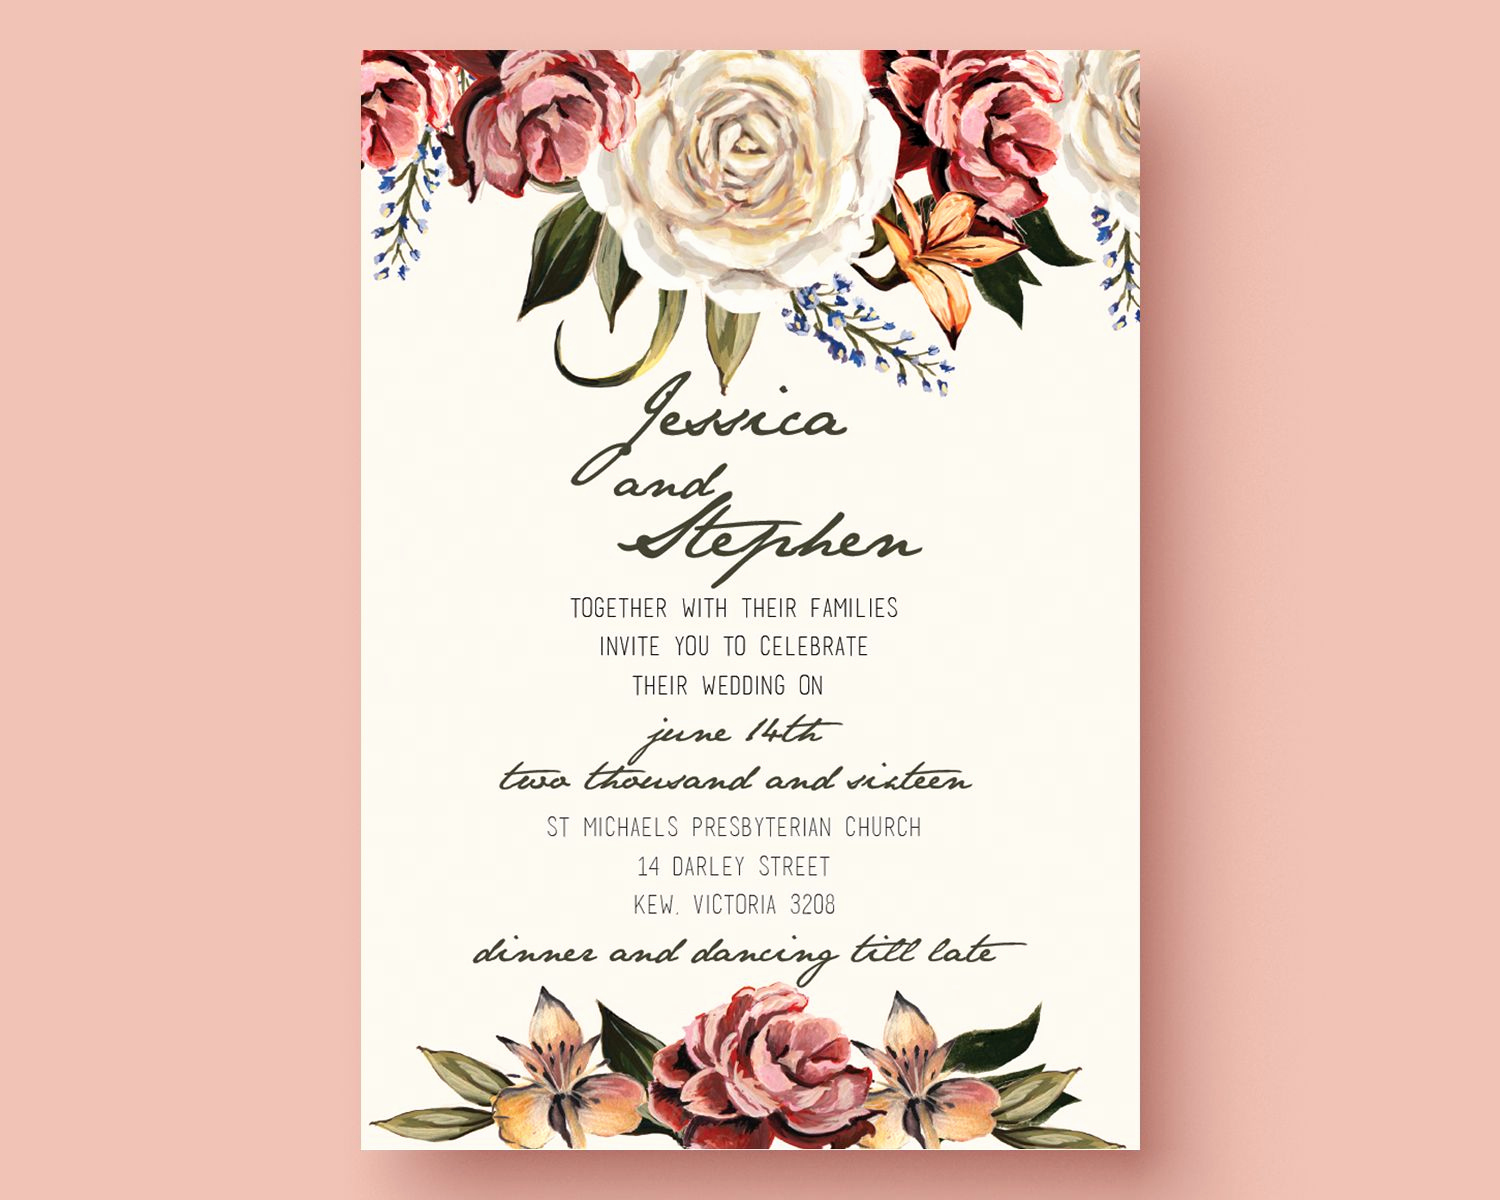 Free Downloadable Wedding Invitation Templates Luxury Get the Template Free This is An Adobe